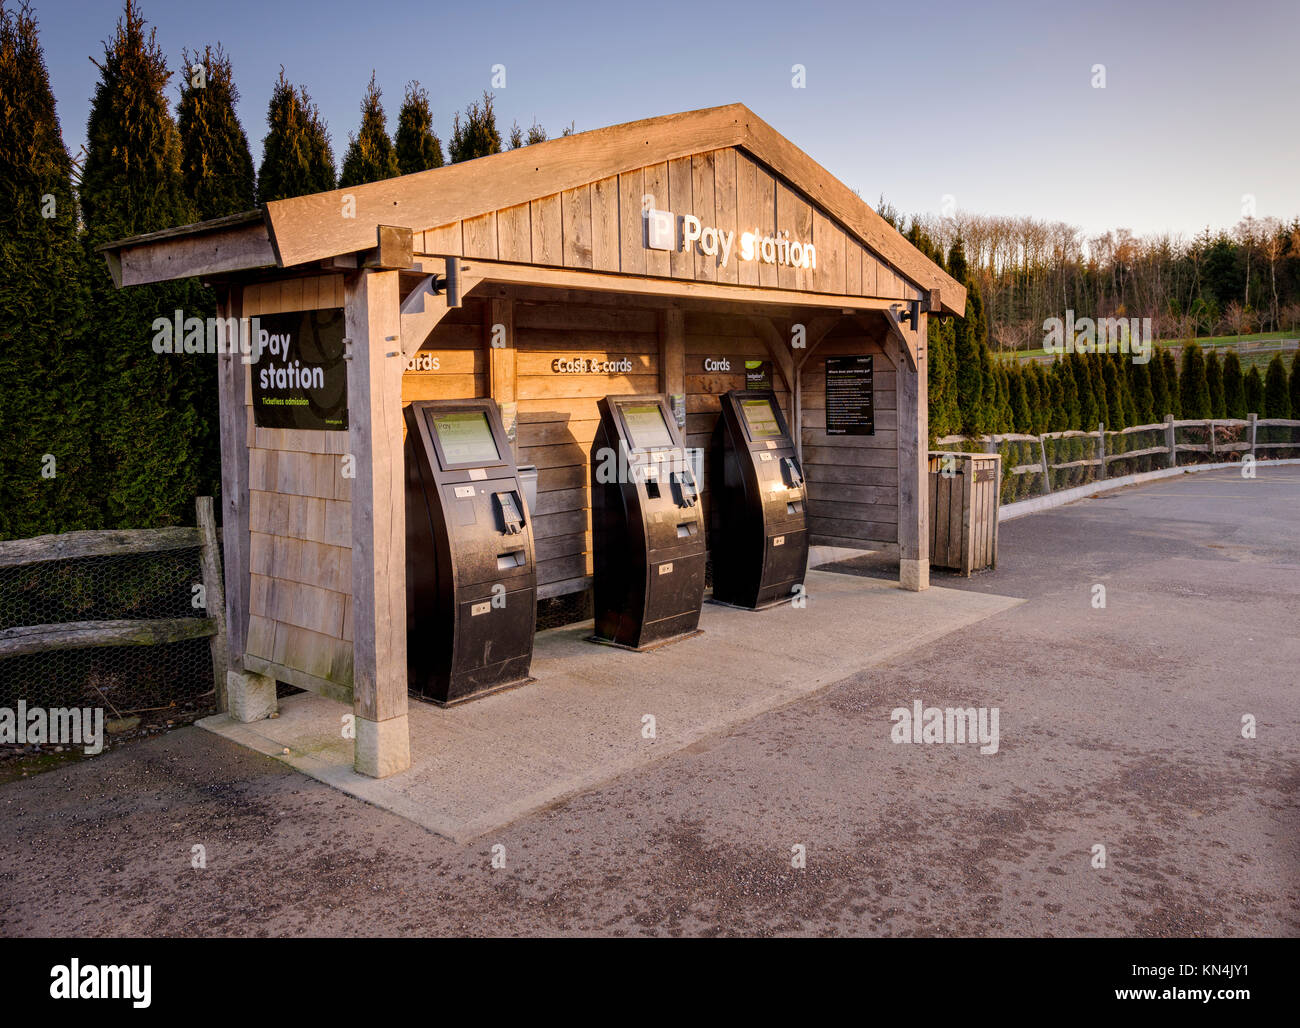 The parking pay station machines at the Bedgebury National Pinetum and Forest in on the Sussex, Kent border. - Stock Image